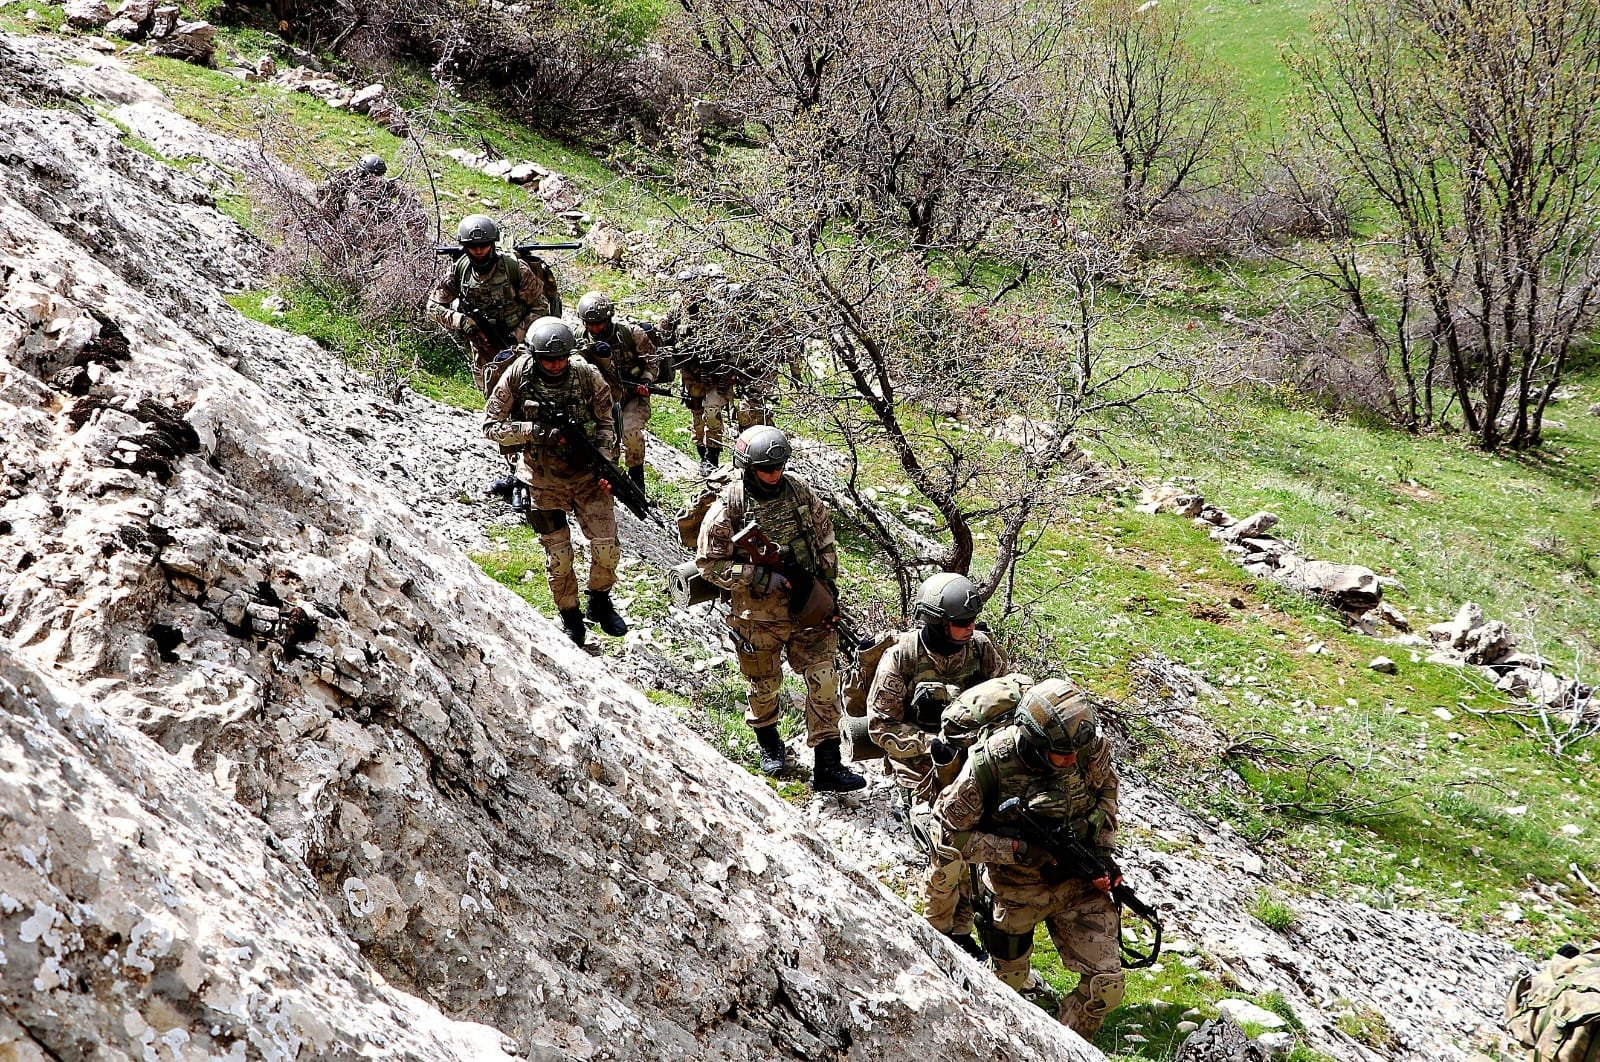 Turkish security forces regularly conduct counterterrorism operations in the eastern and southeastern provinces of Turkey where the PKK has attempted to establish a strong presence.